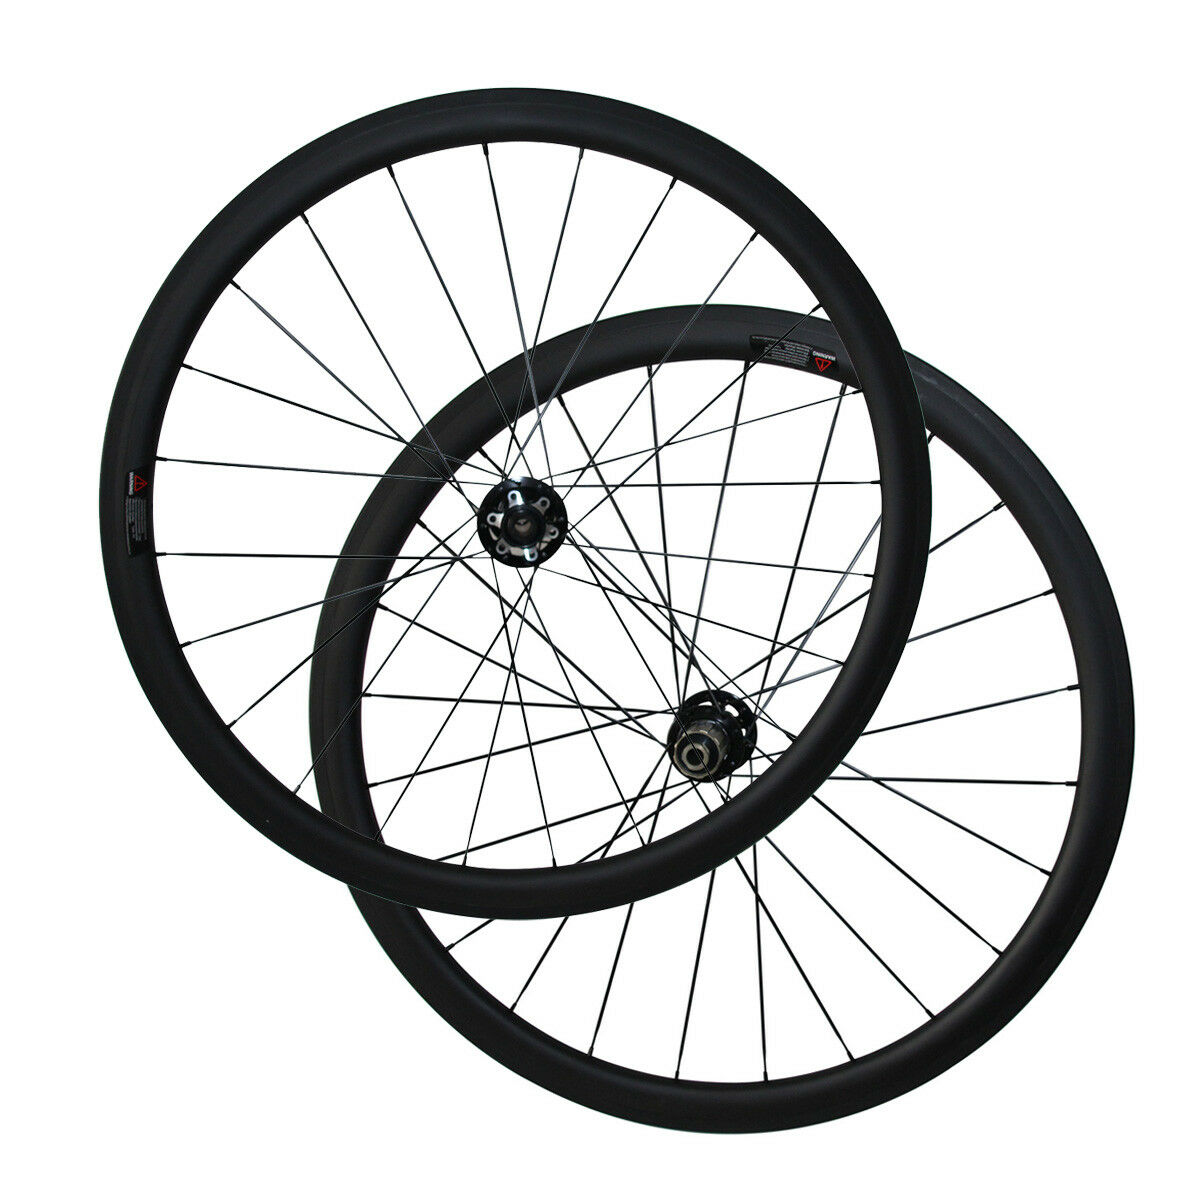 Cyclocross Bike Wheelset with Novatec D791SB D792SB 38mm Tubular 23mm Width